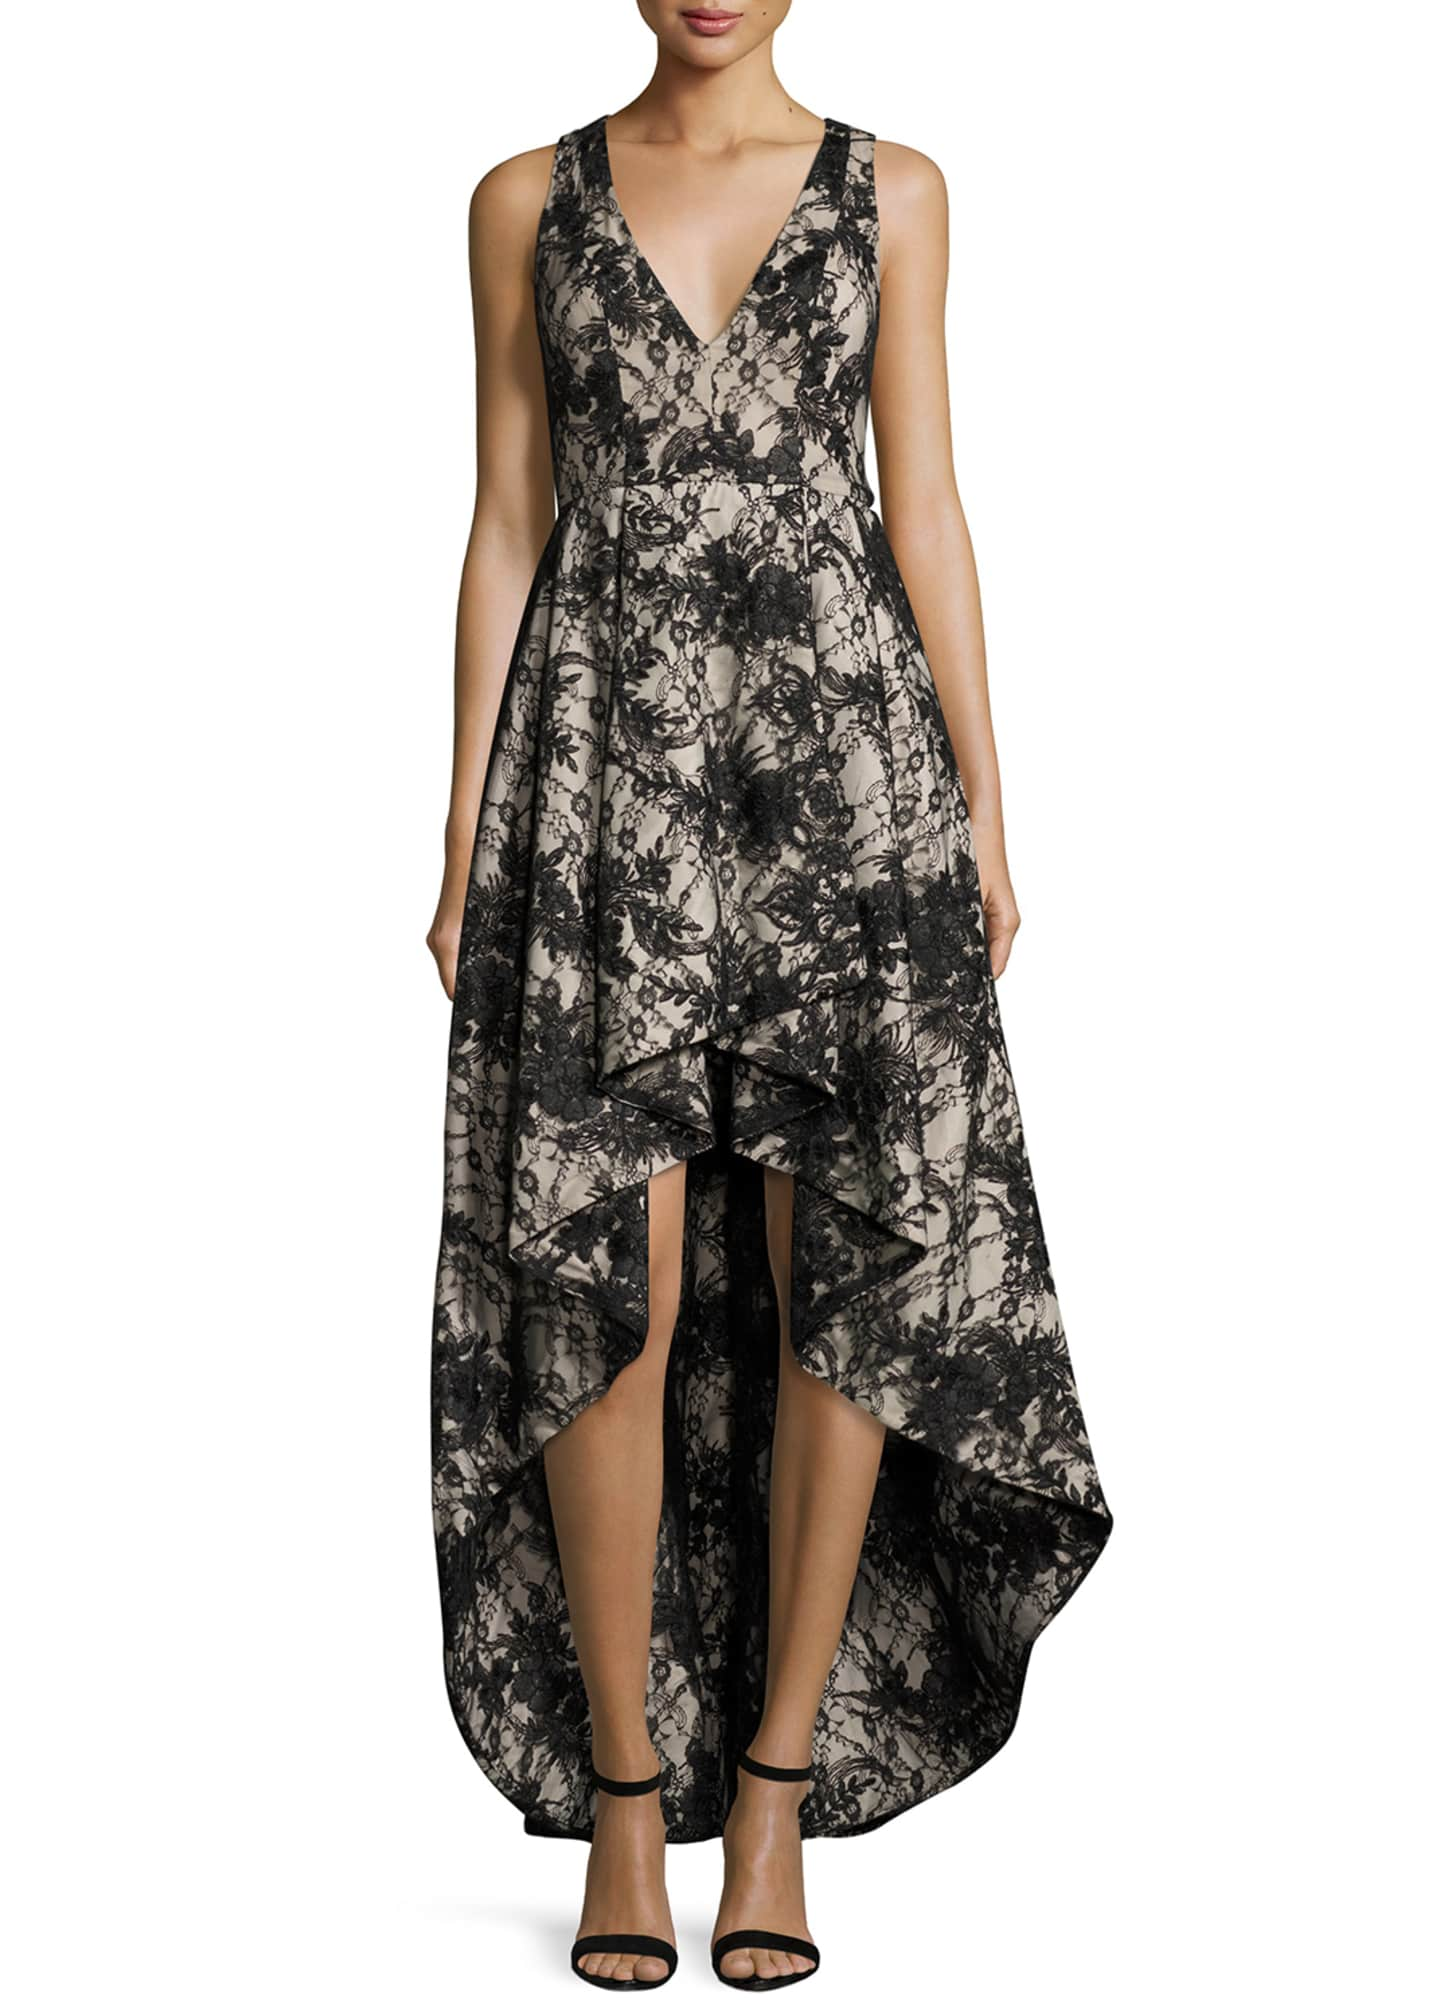 Alice + Olivia Sleeveless Lace High-Low Cocktail Dress,